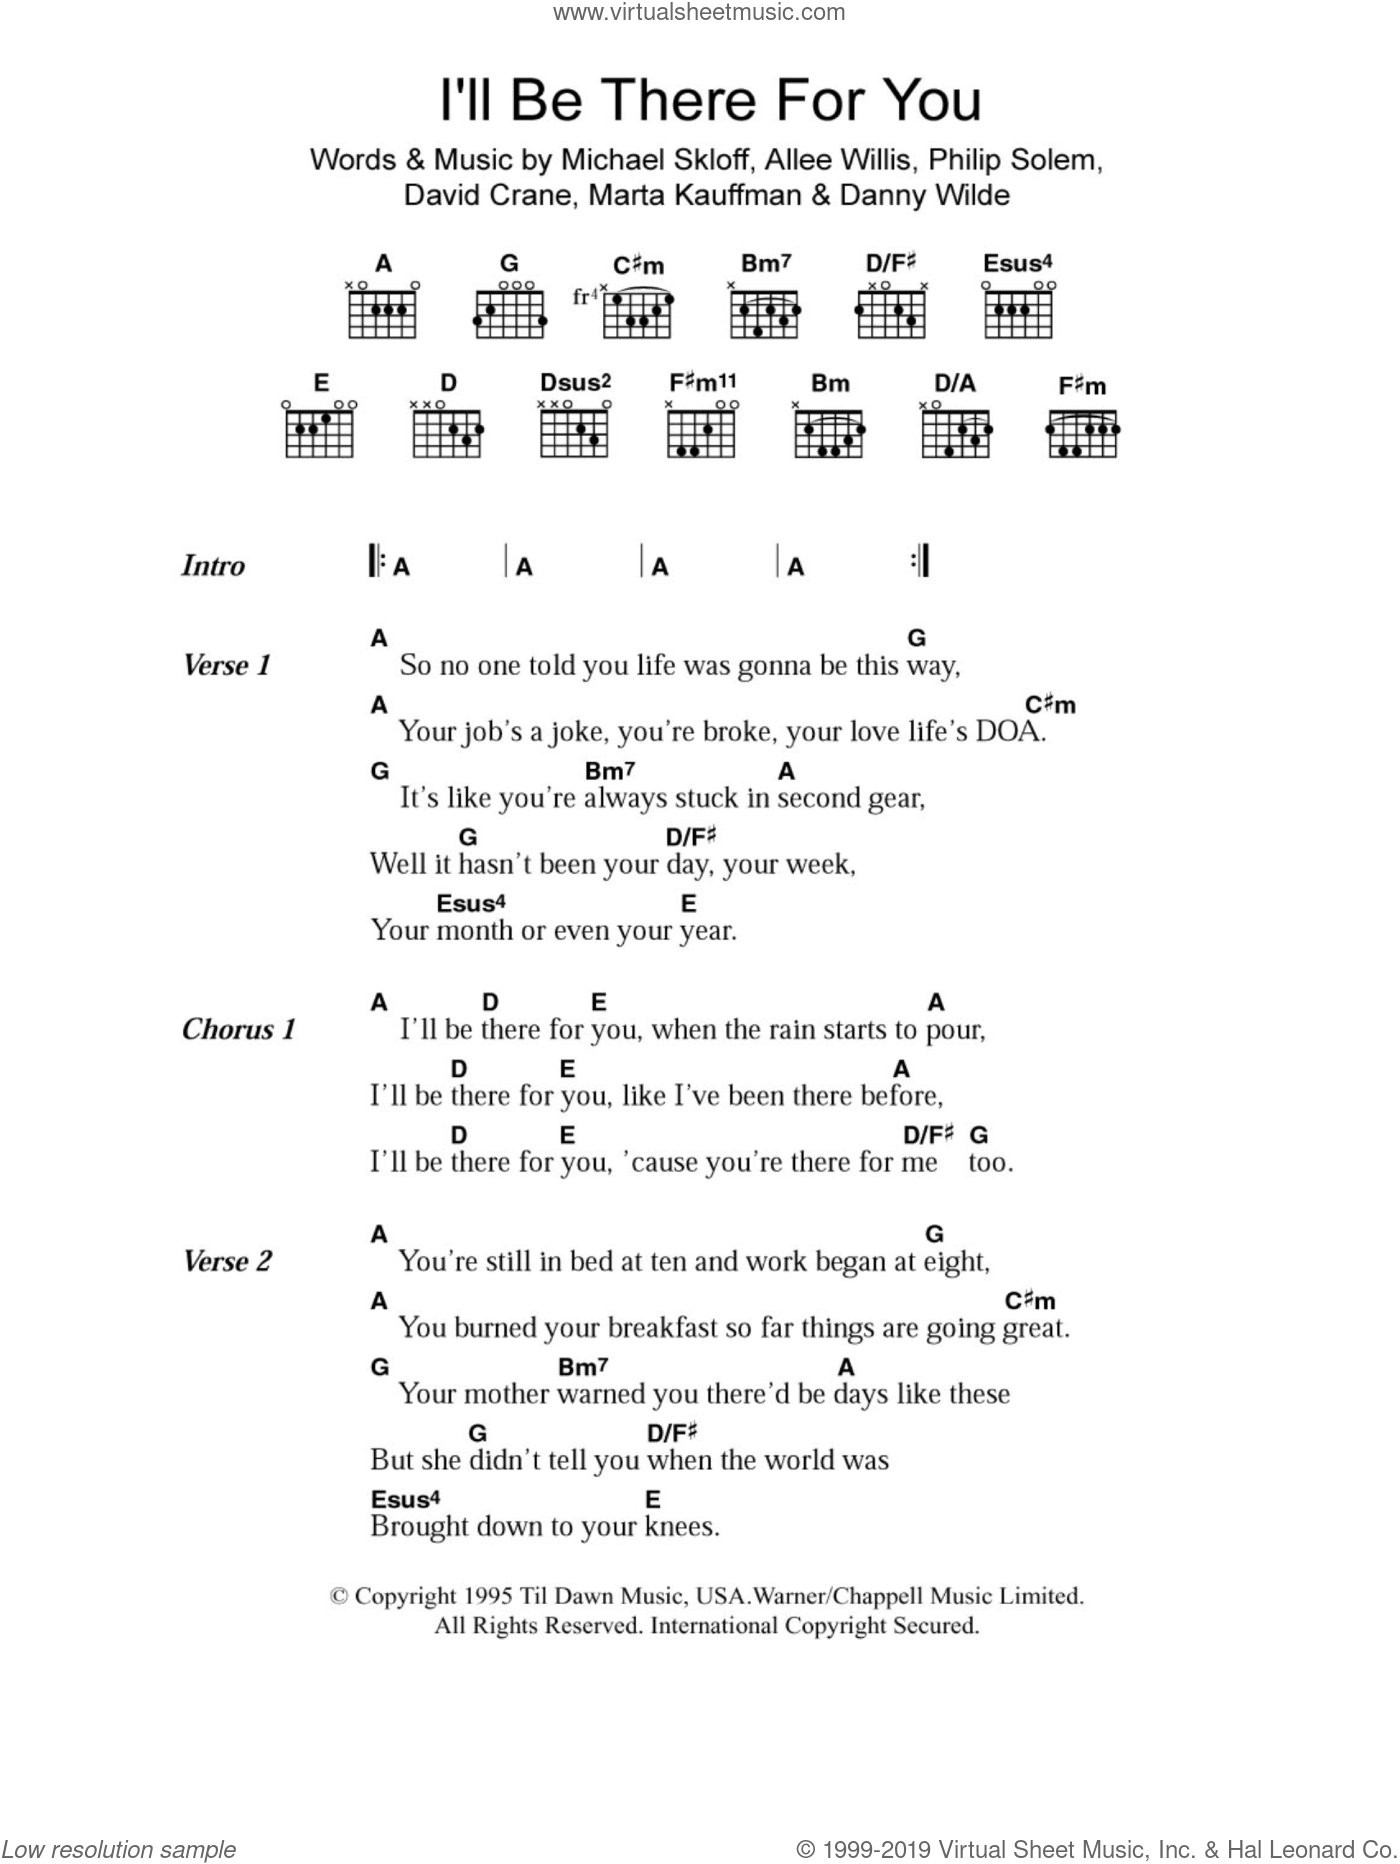 I'll Be There For You sheet music for guitar (chords) by The Rembrandts, Allee Willis, Danny Wilde, David Crane, Marta Kauffman, Michael Skloff and Philip Solem, intermediate skill level